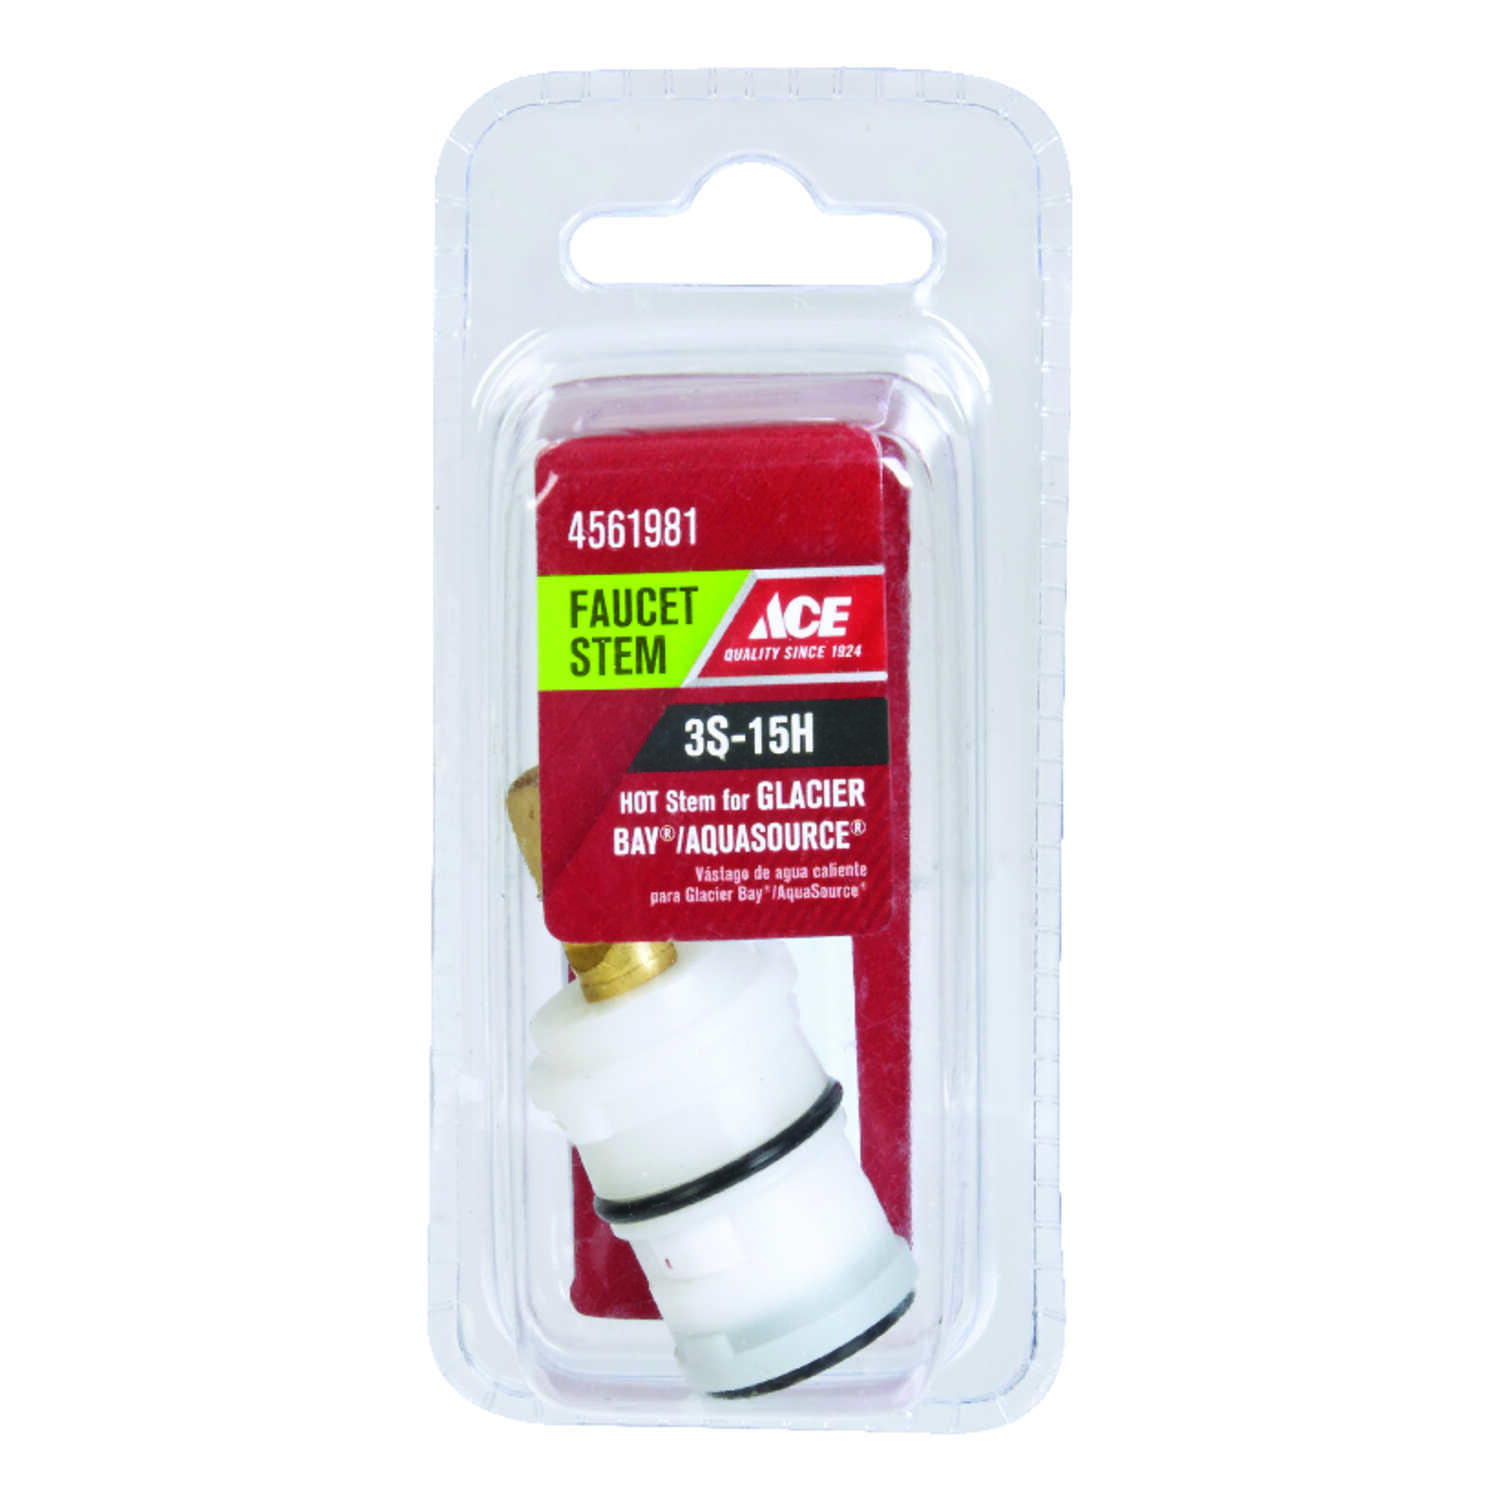 Ace  Hot  3S-15H  Faucet Stem  For Glacier Bay & Aquasource